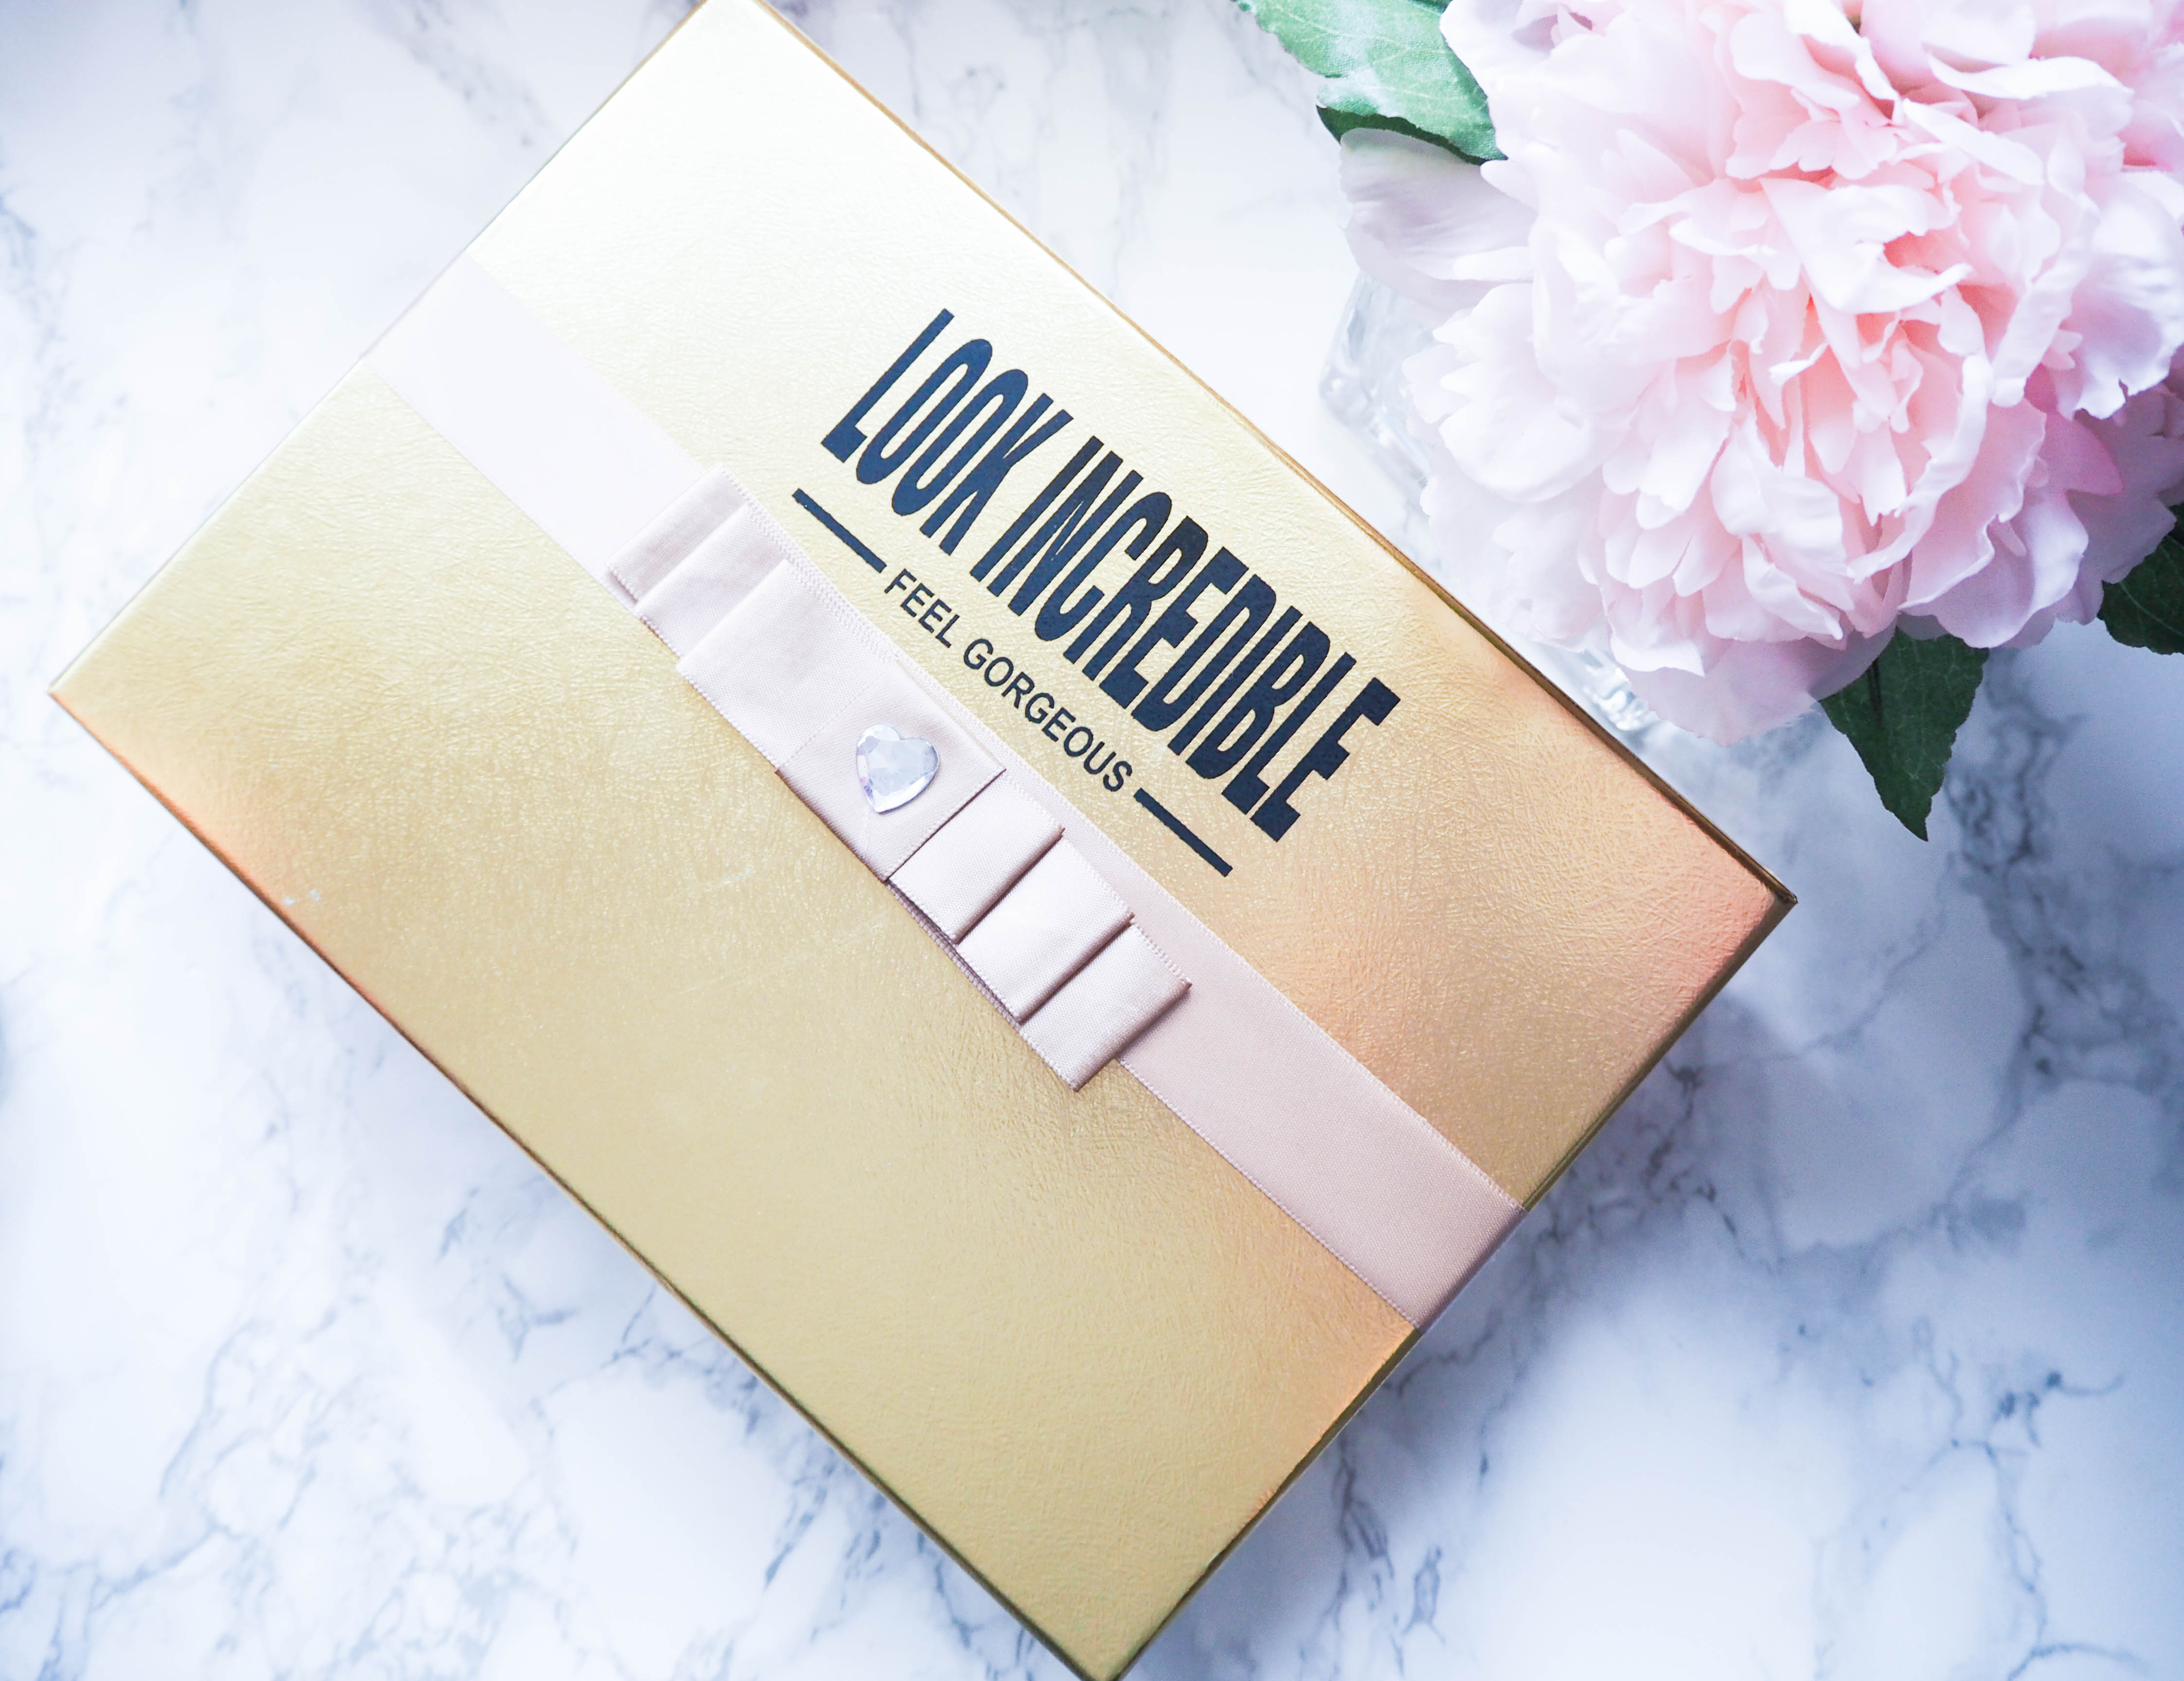 Look Incredible Deluxe Beauty Box - May 2018